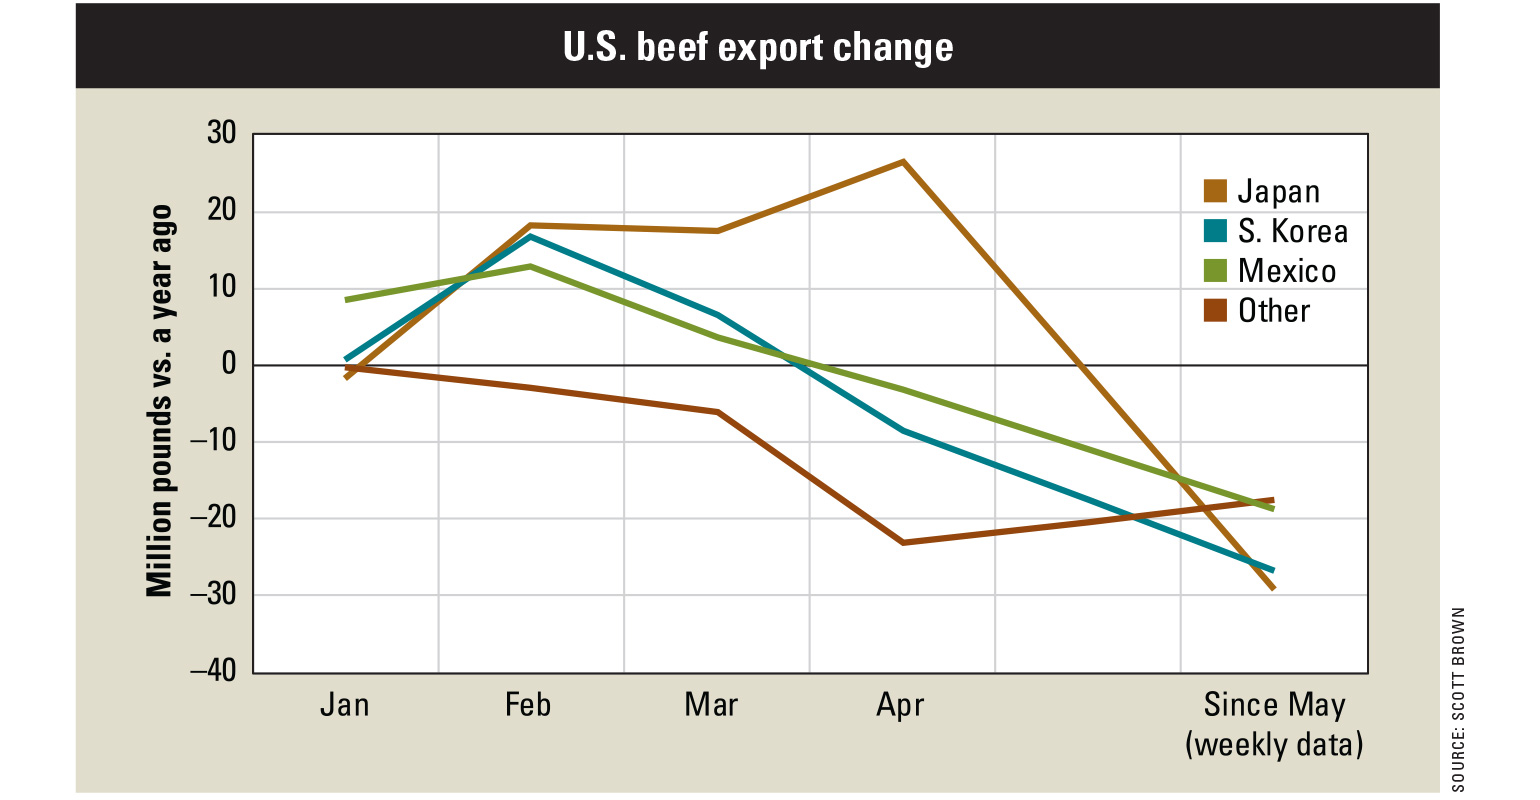 A graph illustrating the change in U.S. beef exports